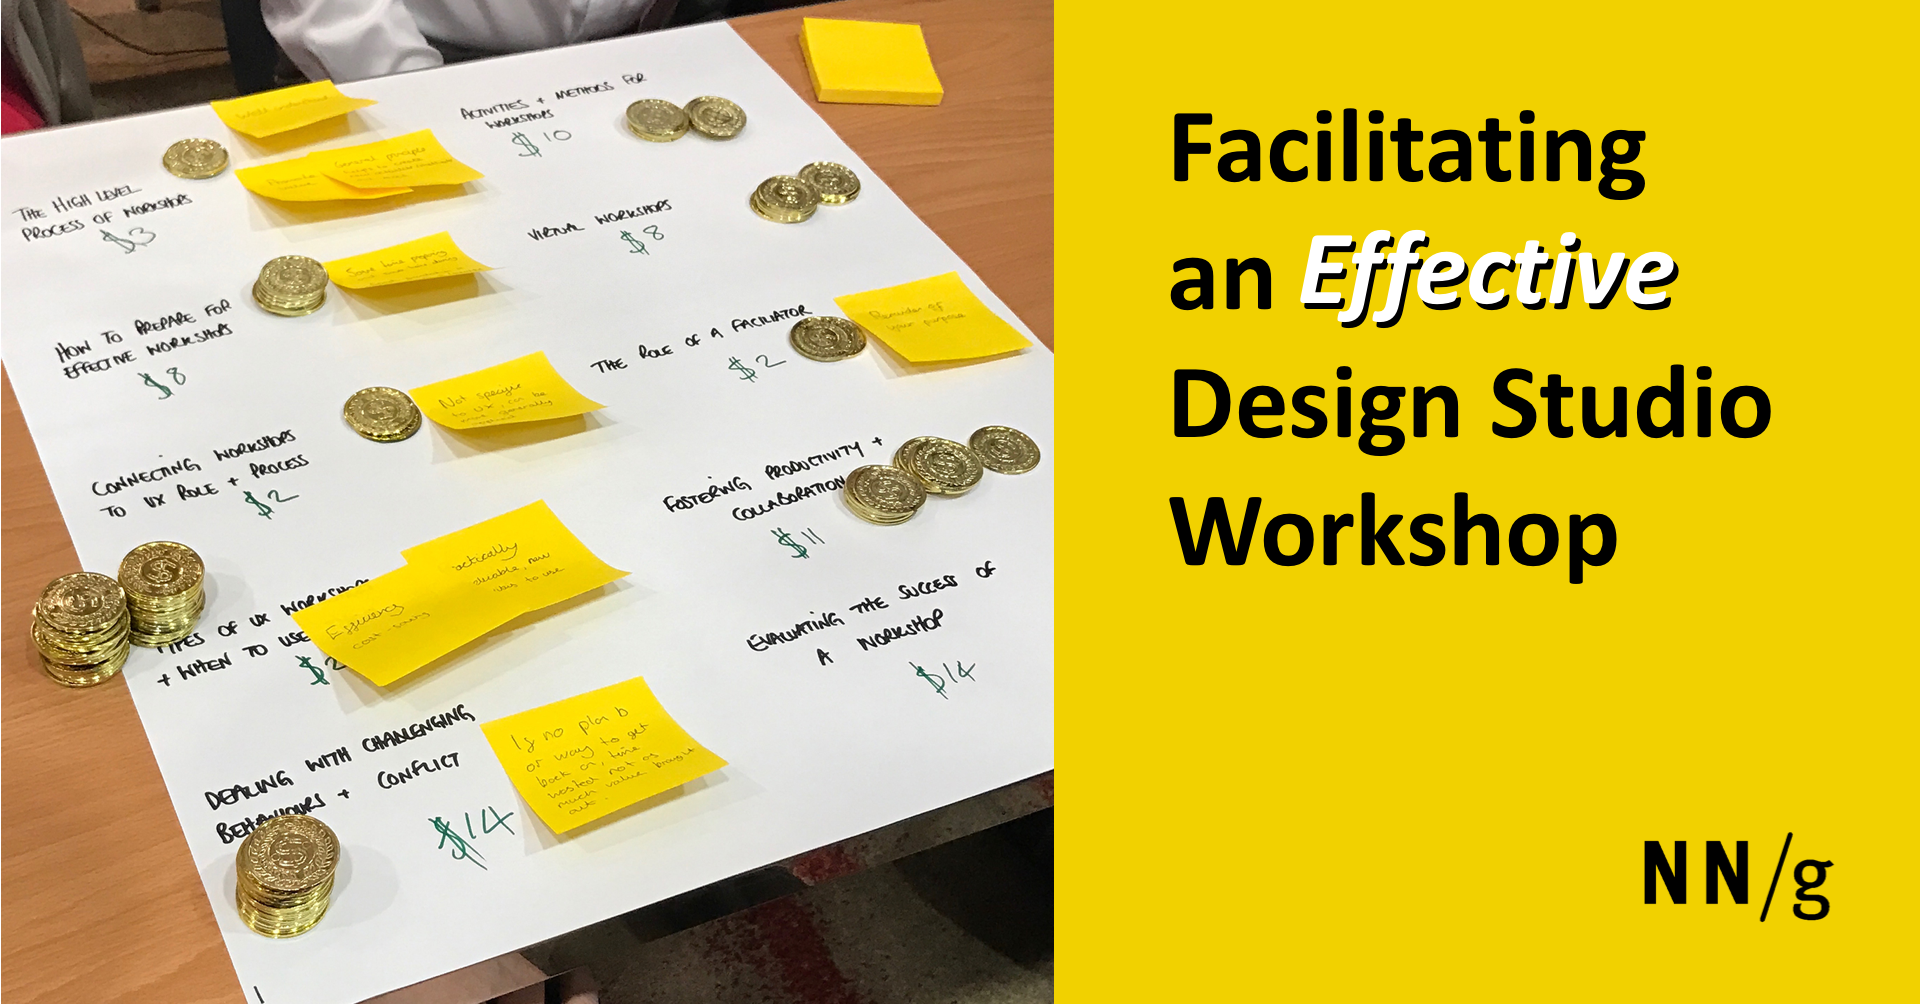 Facilitating an Effective Design Studio Workshop